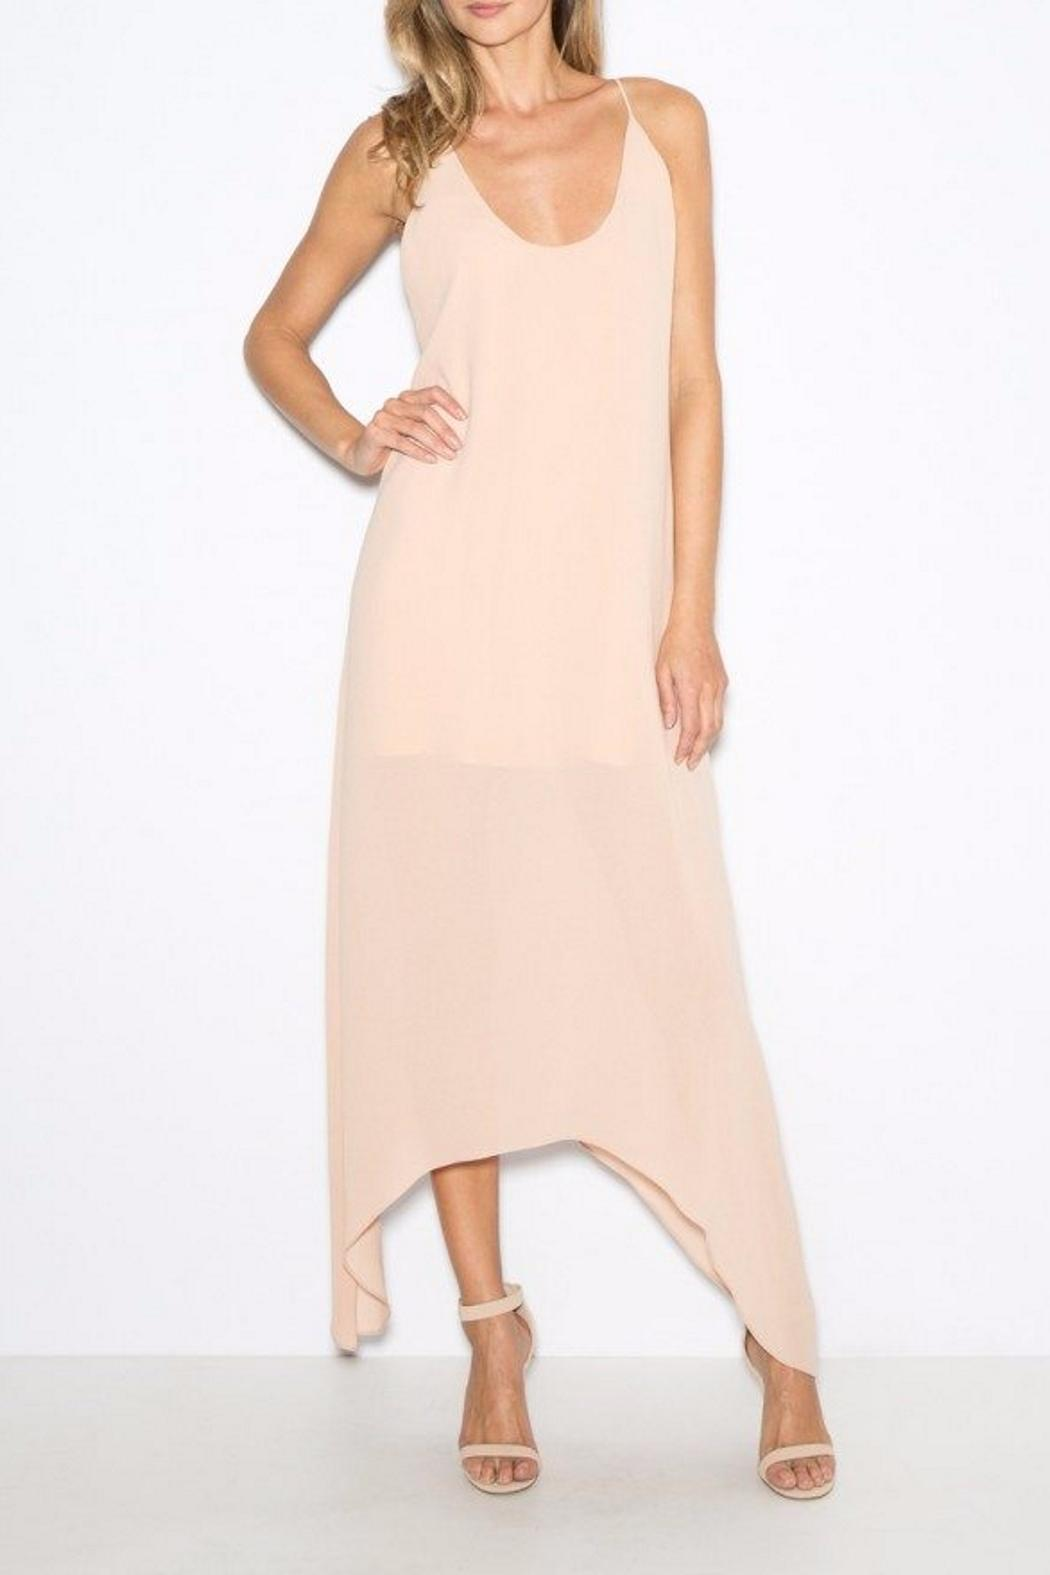 Rory Beca Castanets Gown - Front Full Image